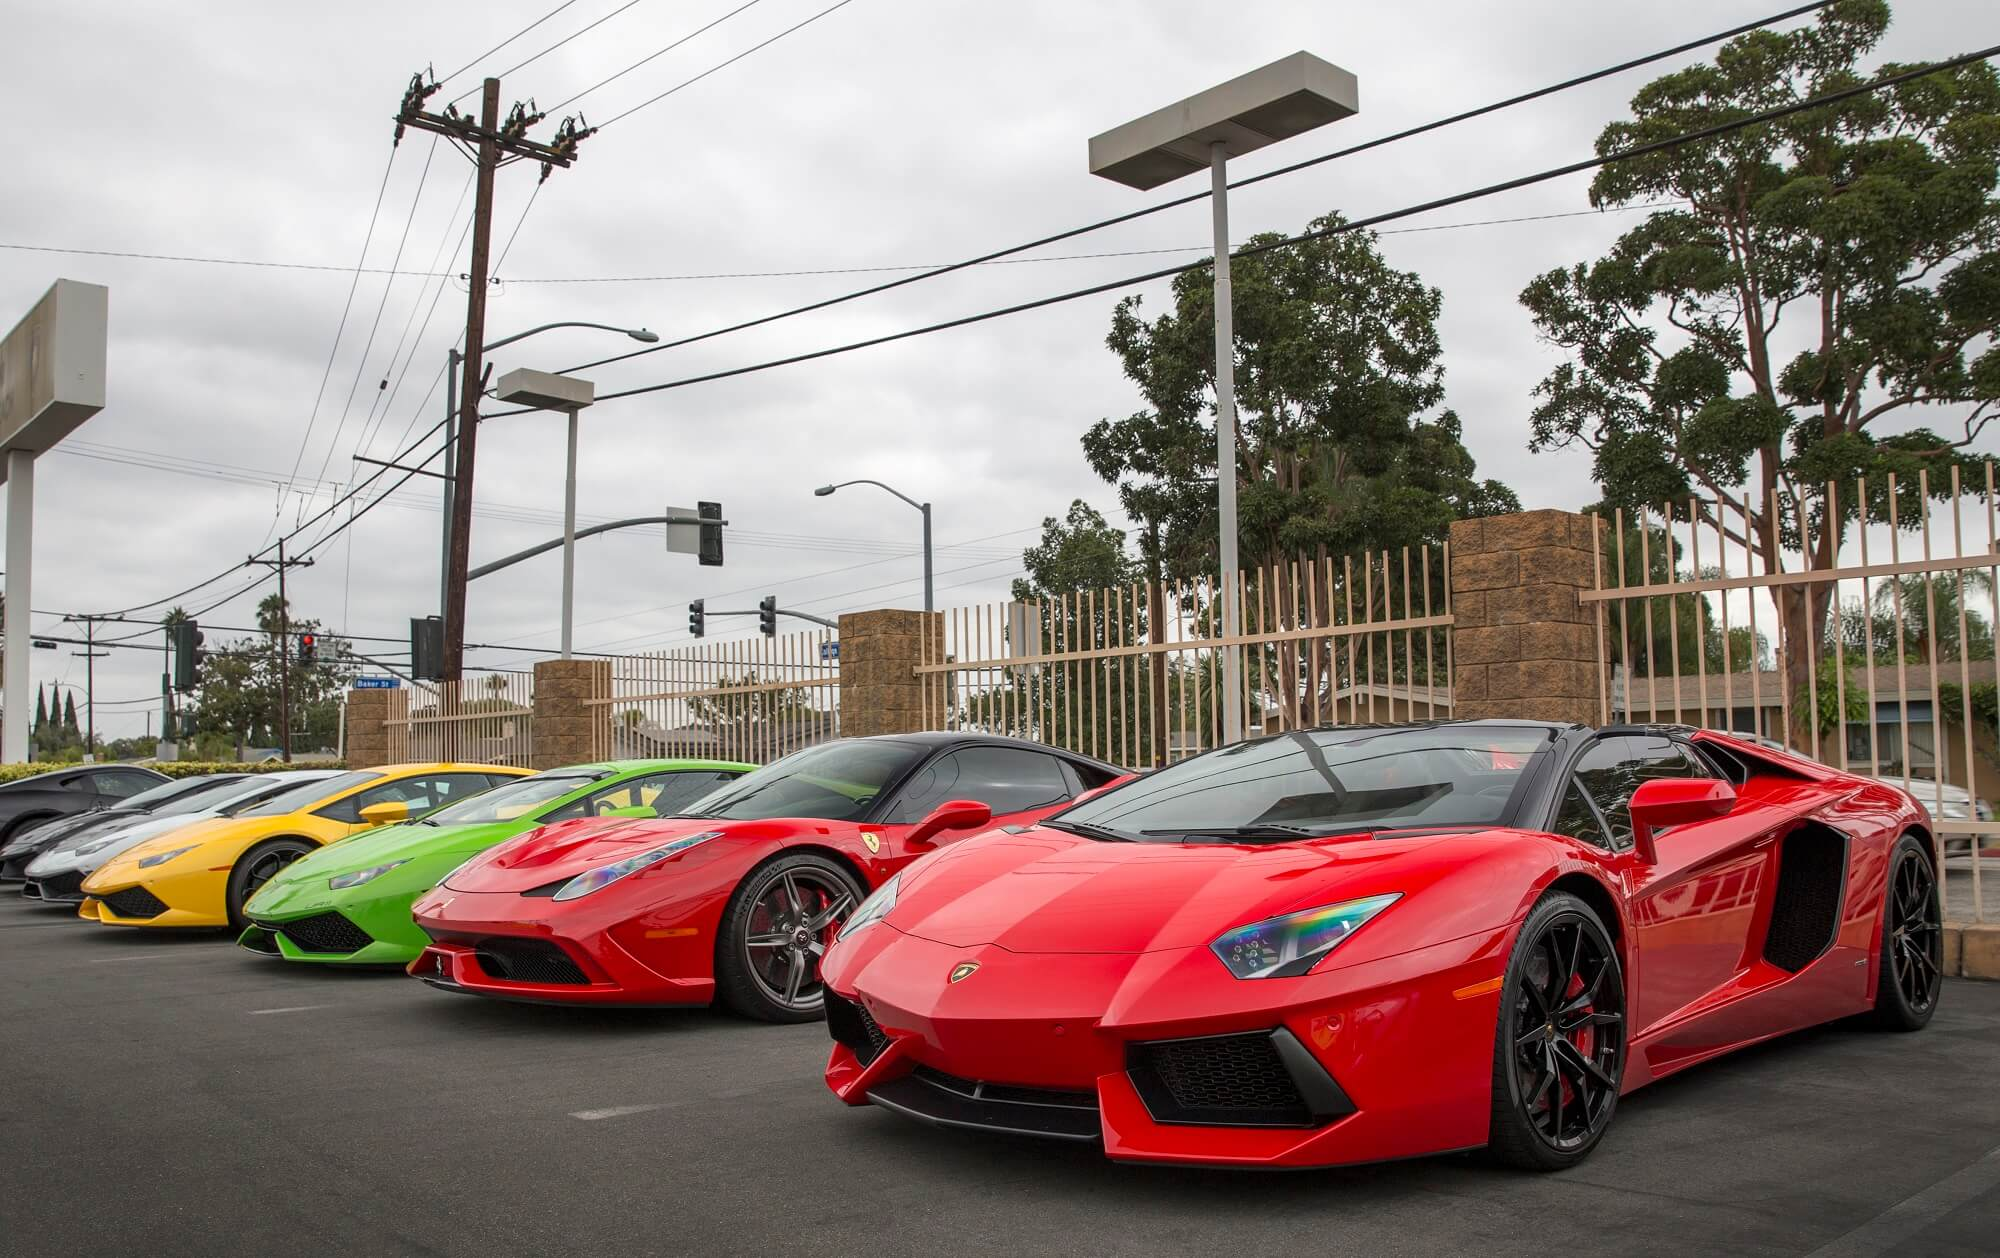 exclusive: lamborghini newport beach supercar show - cars247